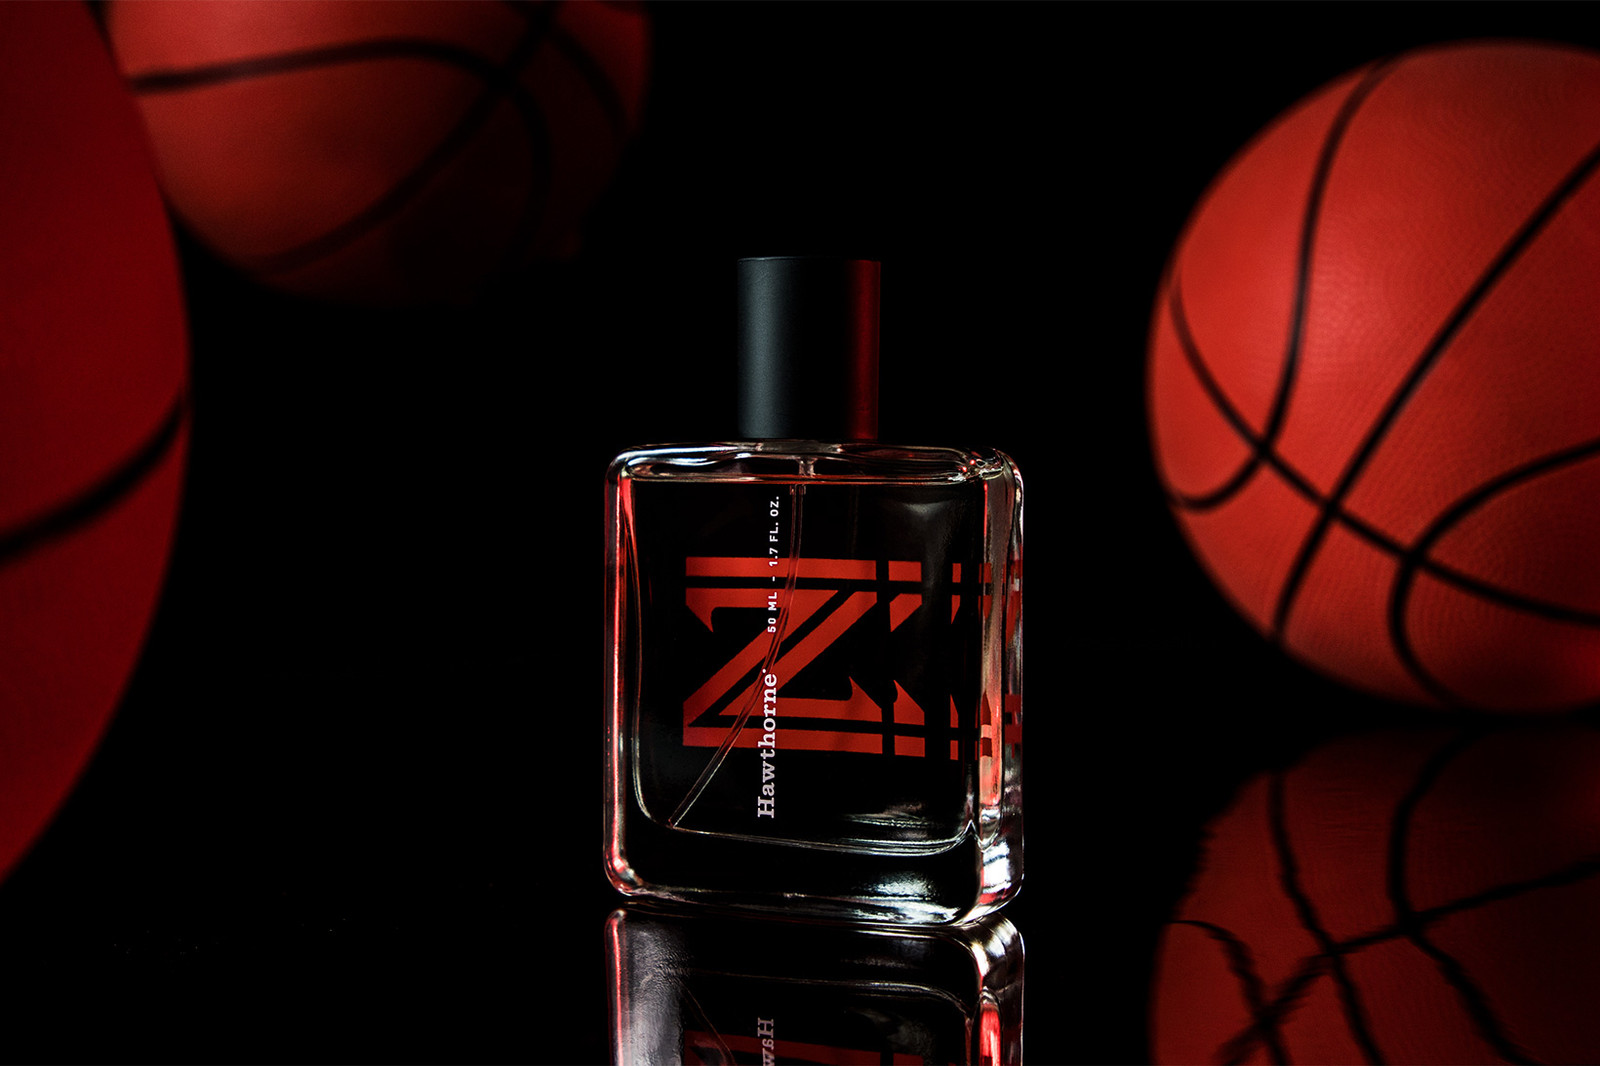 Zach LaVine Hawthorne Interview Chicago Bulls NBA fashion 2018 cologne fragrance style adidas basketball hoops sneakers shoes Minnesota timberwolves